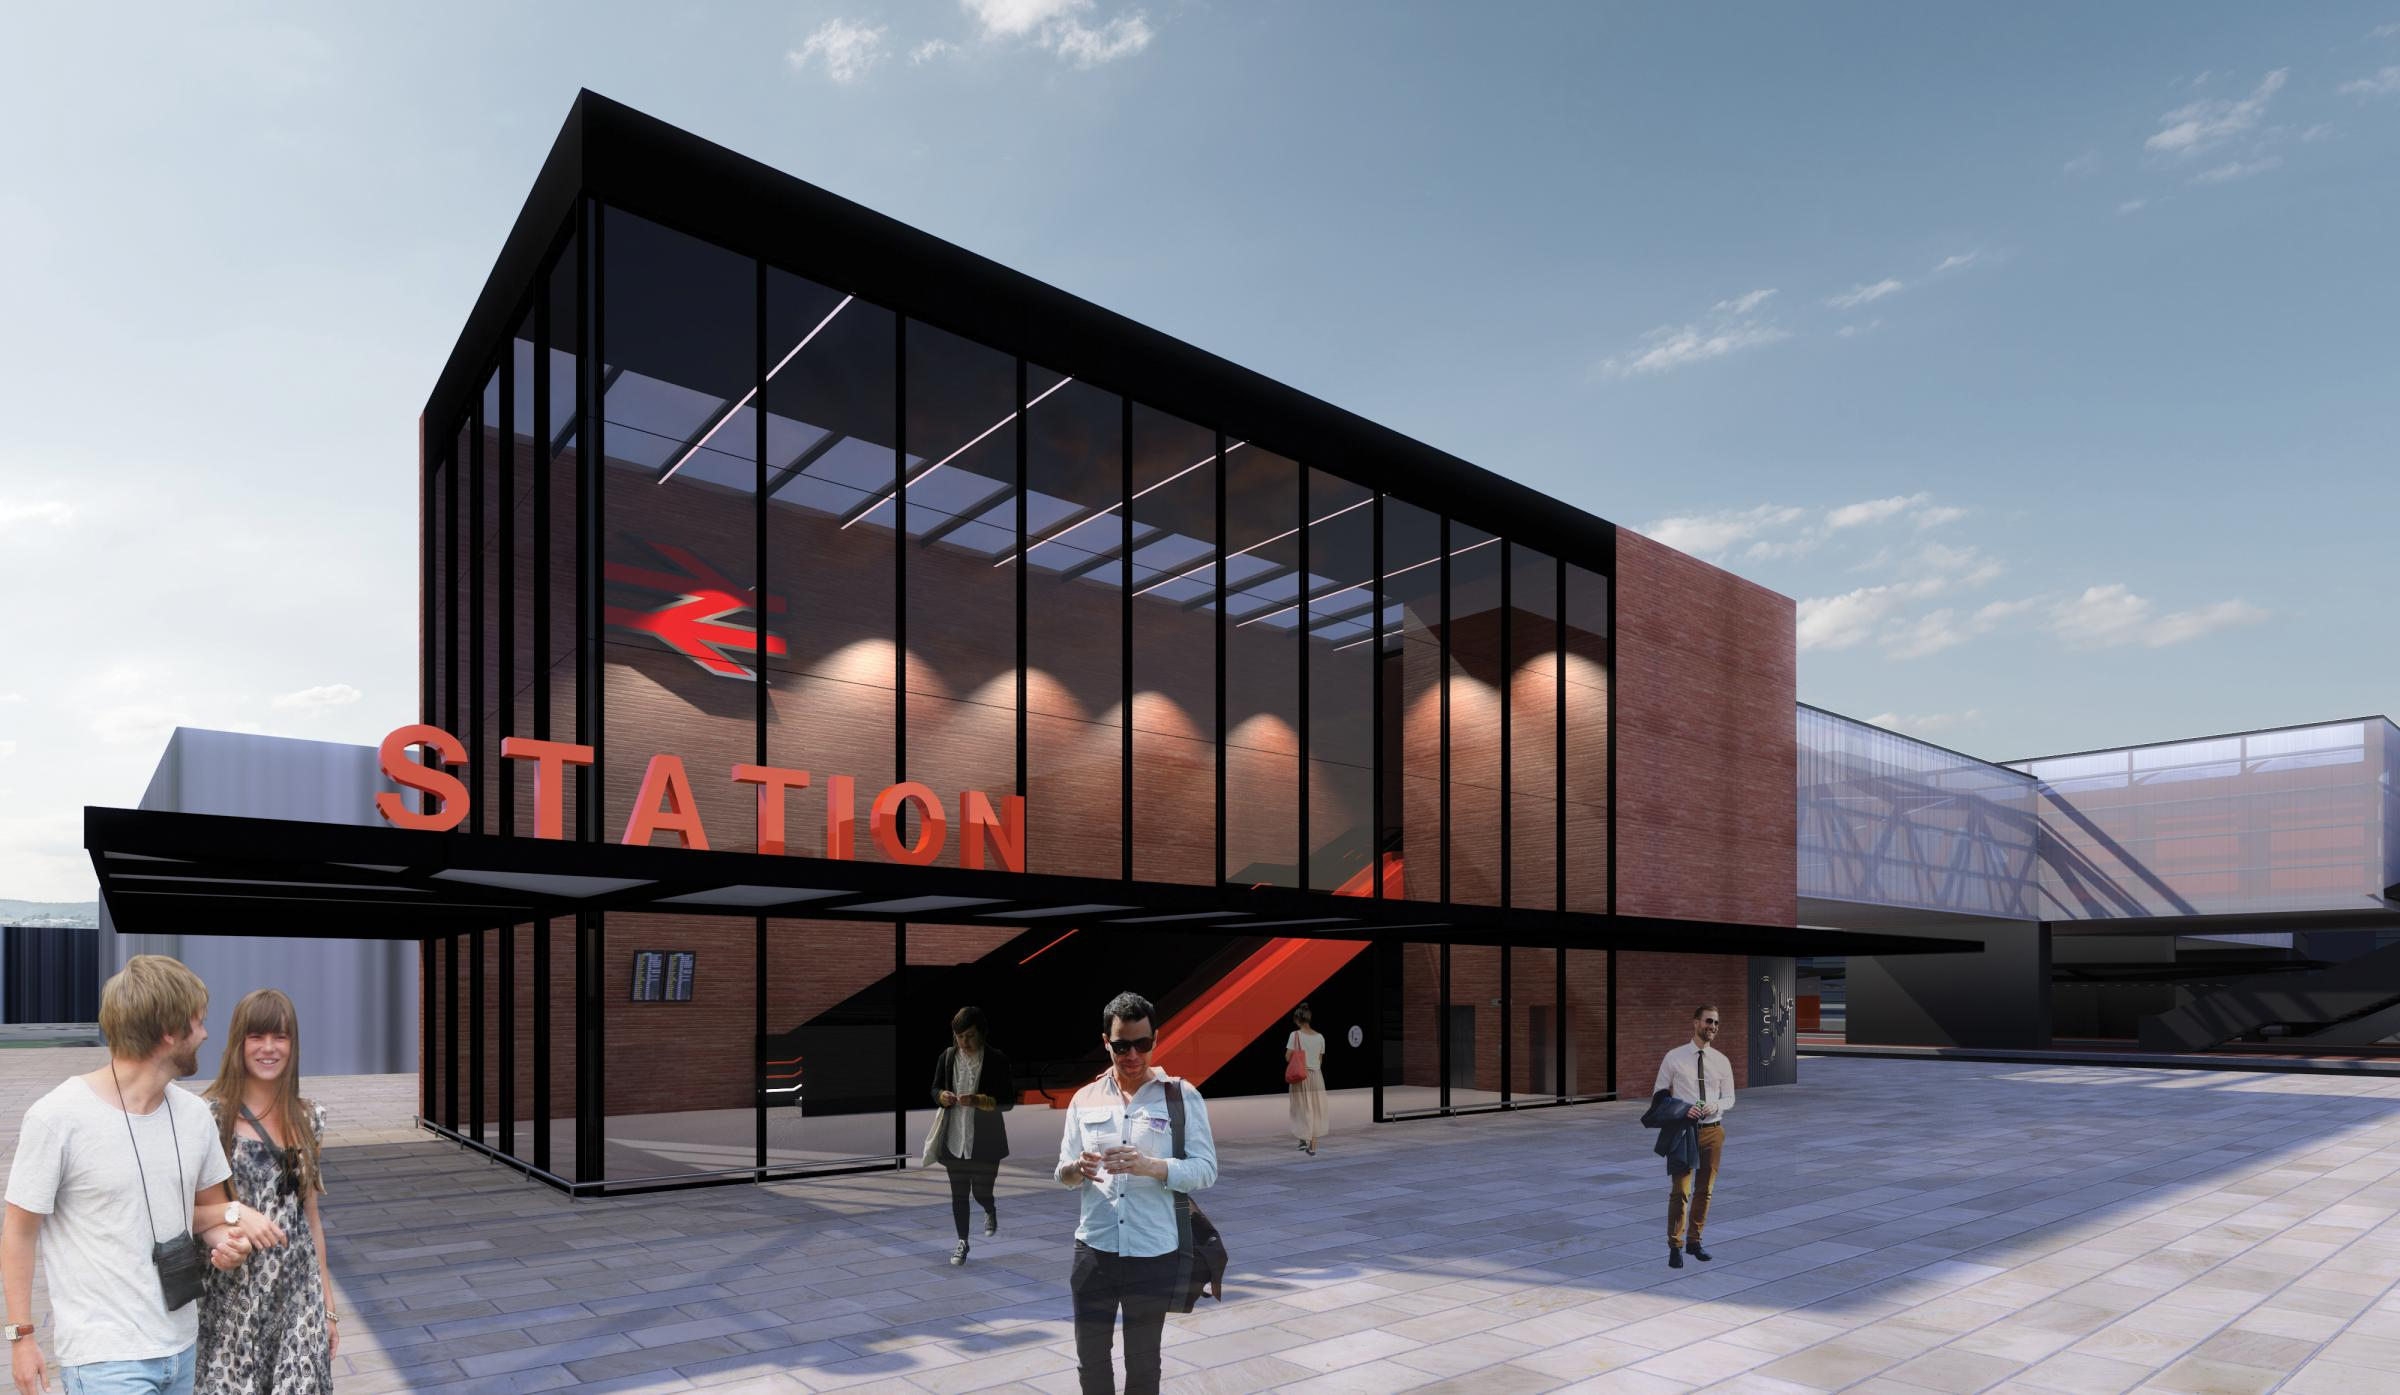 An artistic impression as to what the station will look like